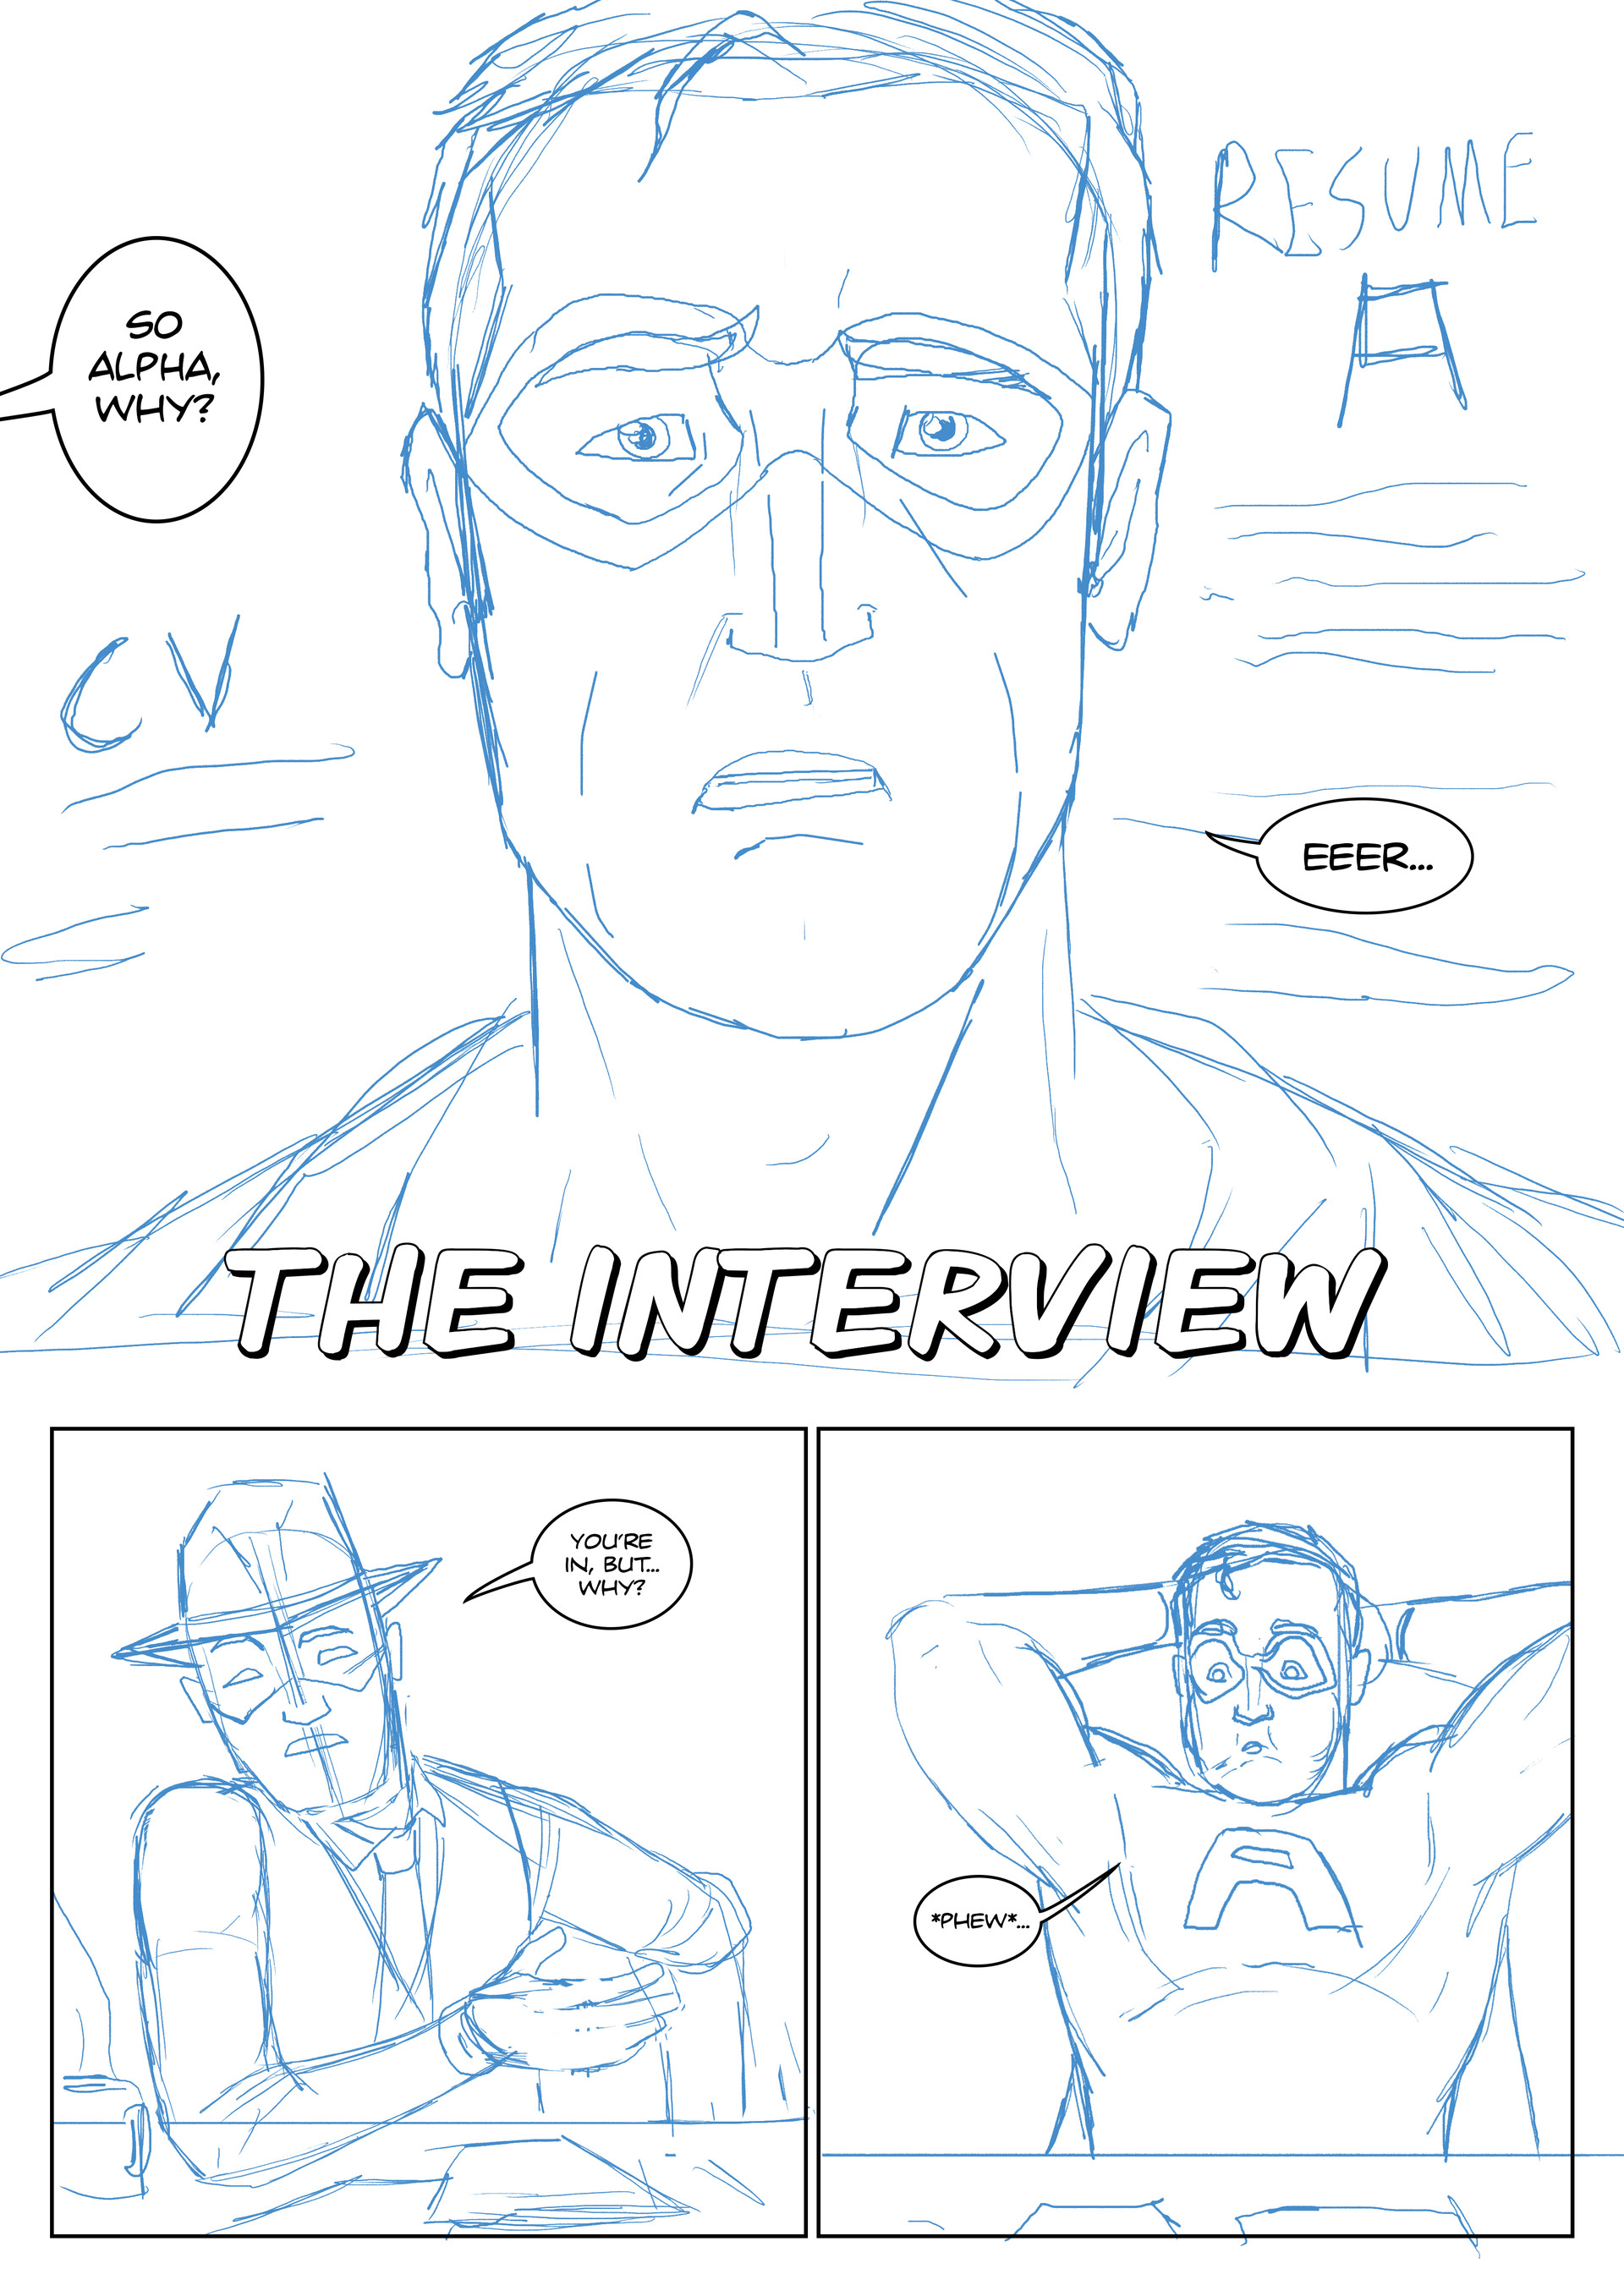 Elliot balson page 1 roughs